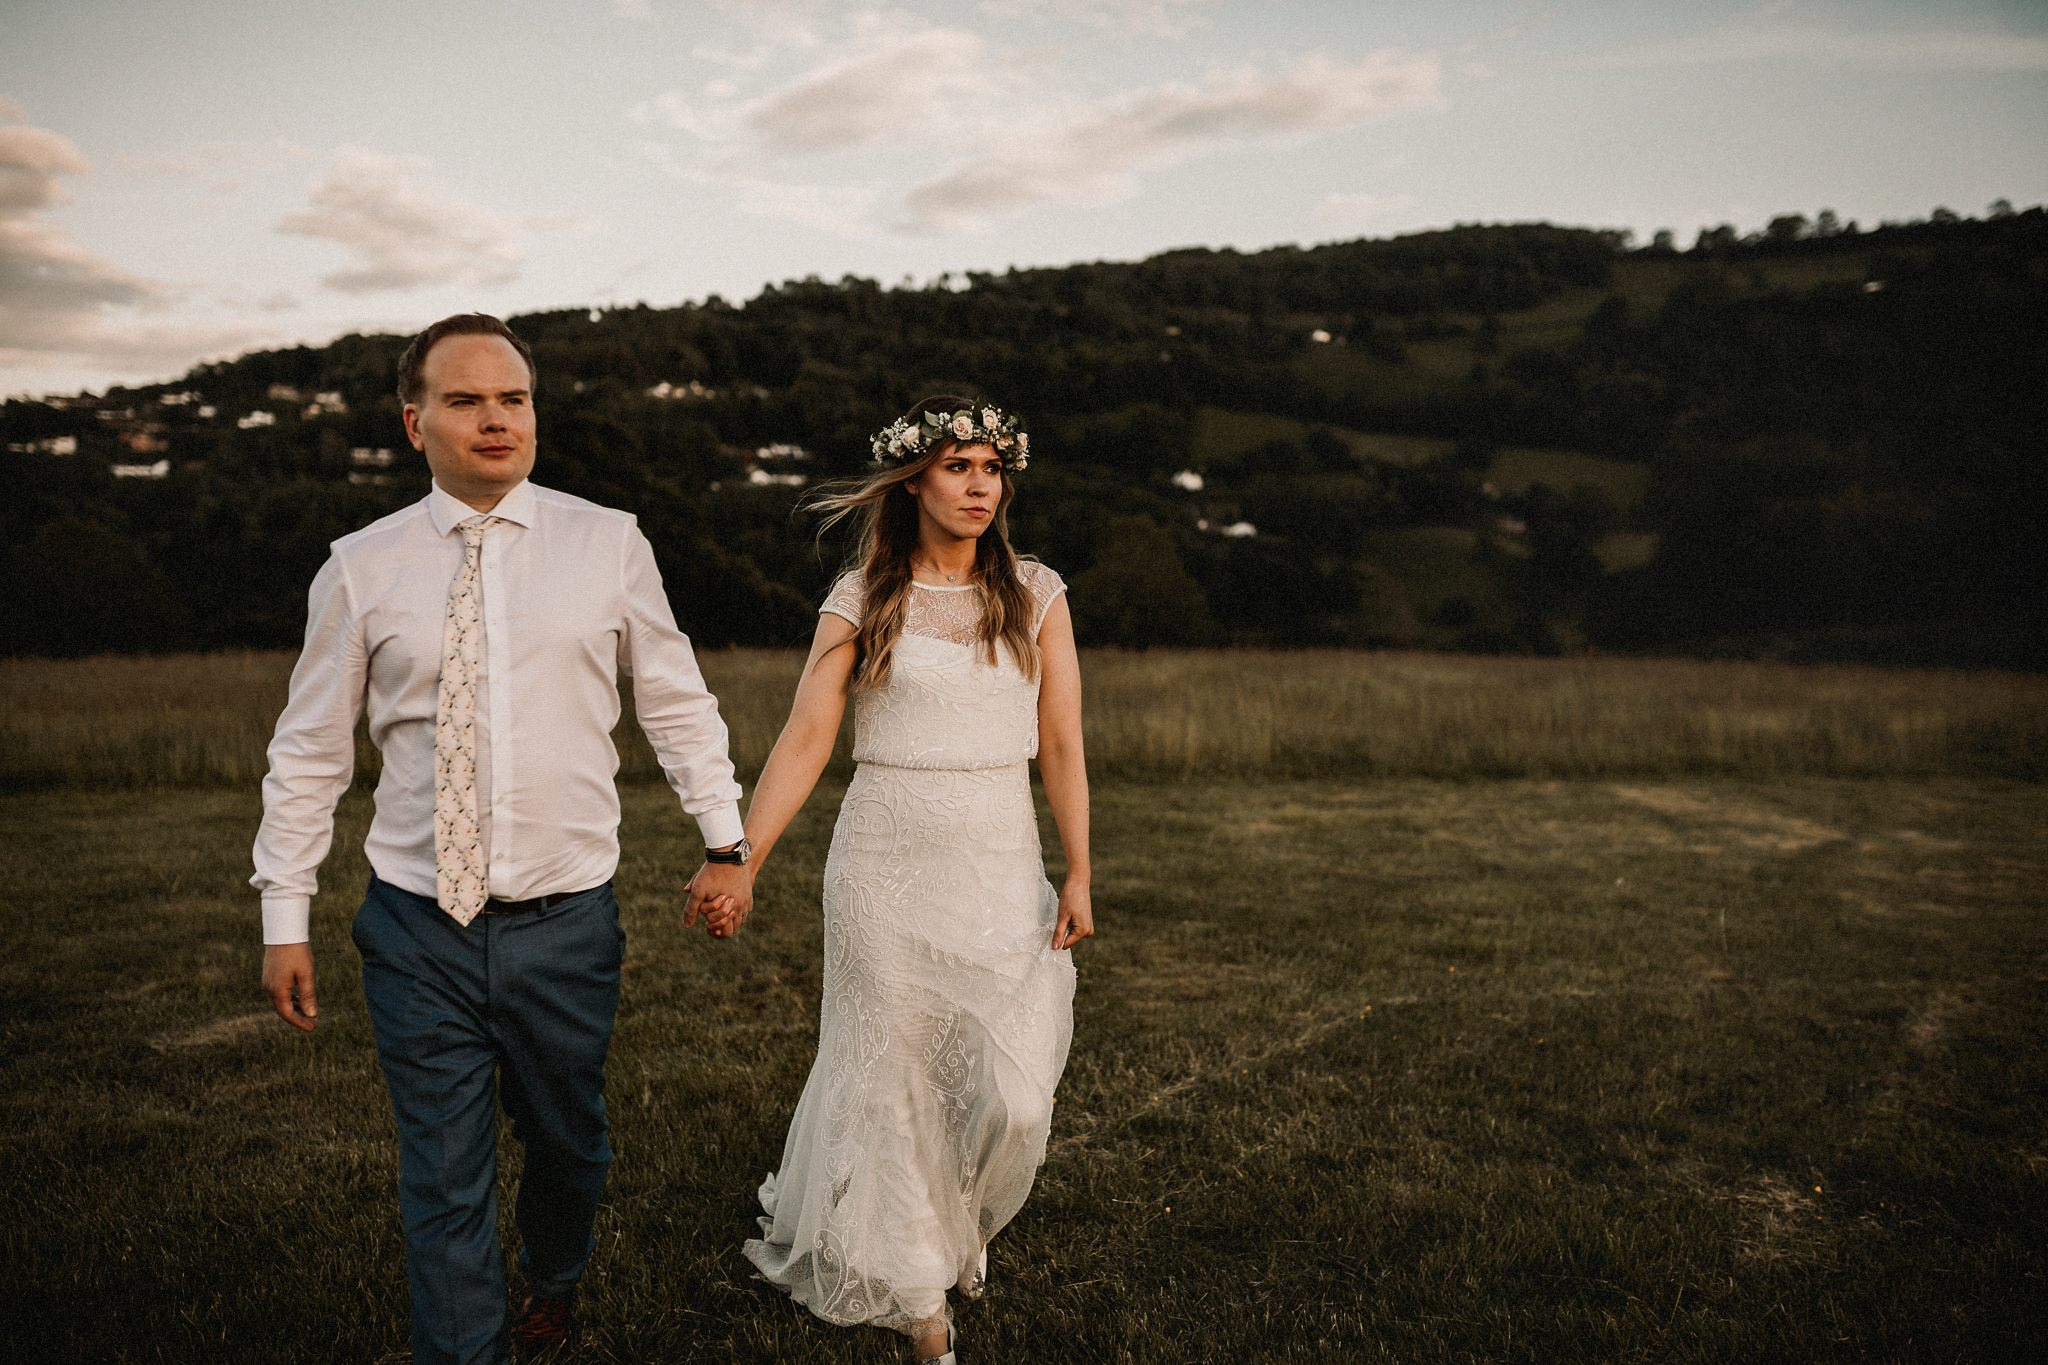 North Wales Wedding Photographer - Llangollen-7123.jpg